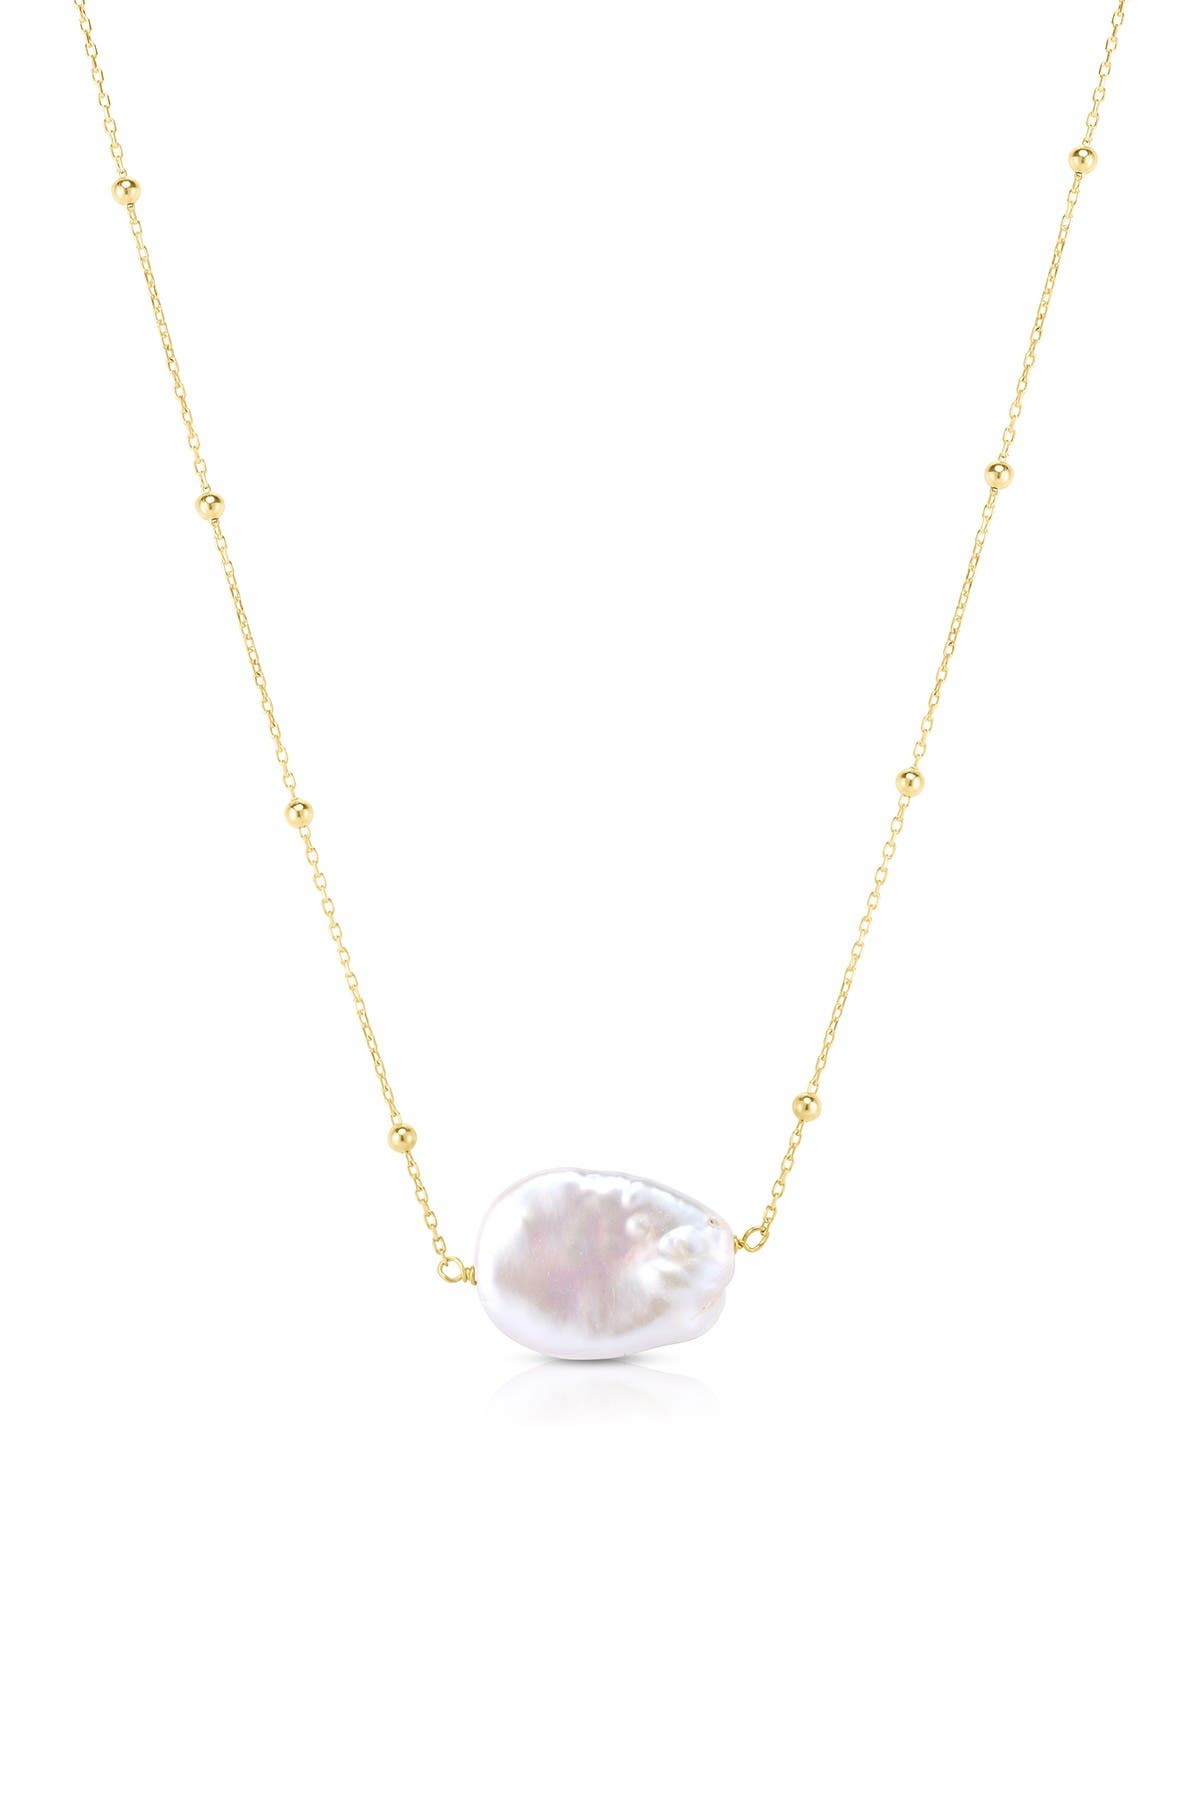 Vermeil//Gold over Sterling Silver Round pendant Natural gemstone 10-11mm